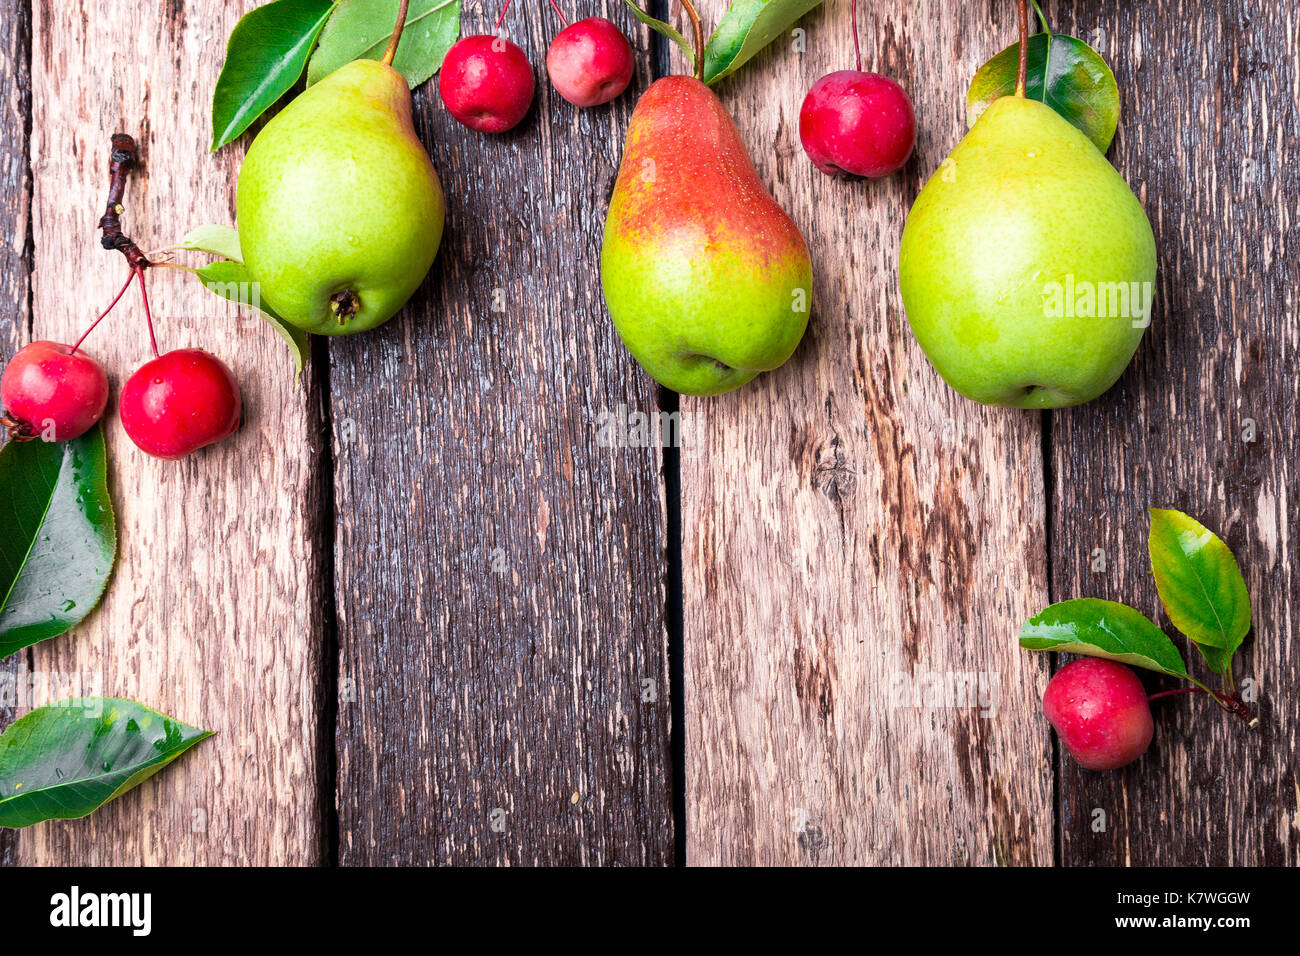 Pear and small apple on wooden rustic background. Top view. Frame. Autumn harvest. Copy space - Stock Image